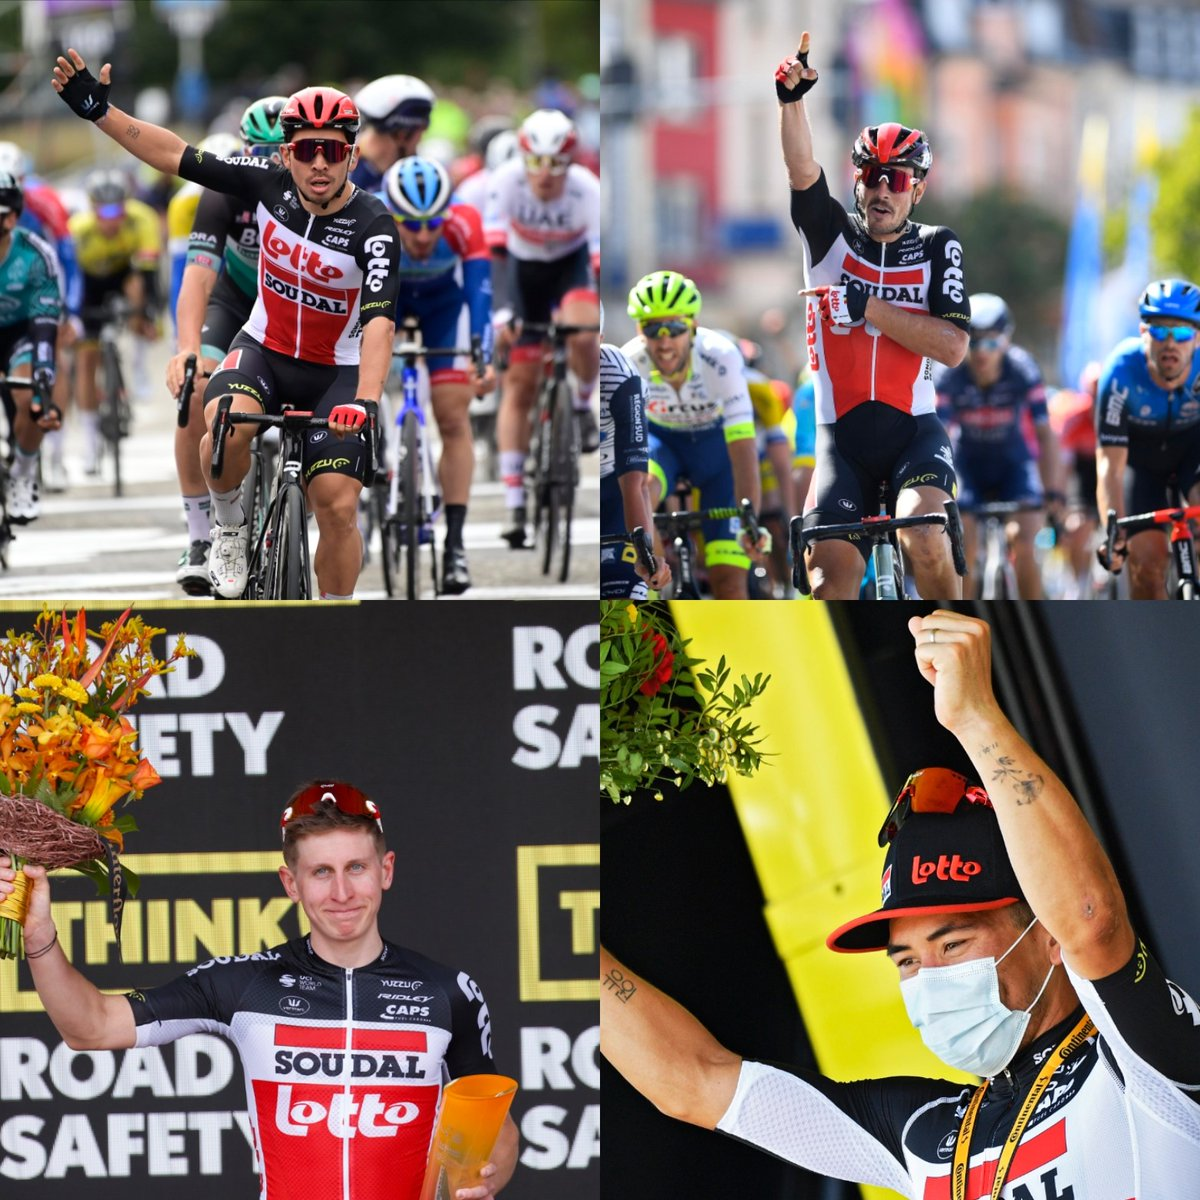 2020. A year in which not only our riders enjoyed the winning feeling, but also a great deal of the @NatLot_Belgie players. Besides, the Nationale Loterij invested 325 million euros in Belgian society last year.  @NatLot_Belgie let's go for more of that winning feeling in 2021😉 https://t.co/22QMwboLDc